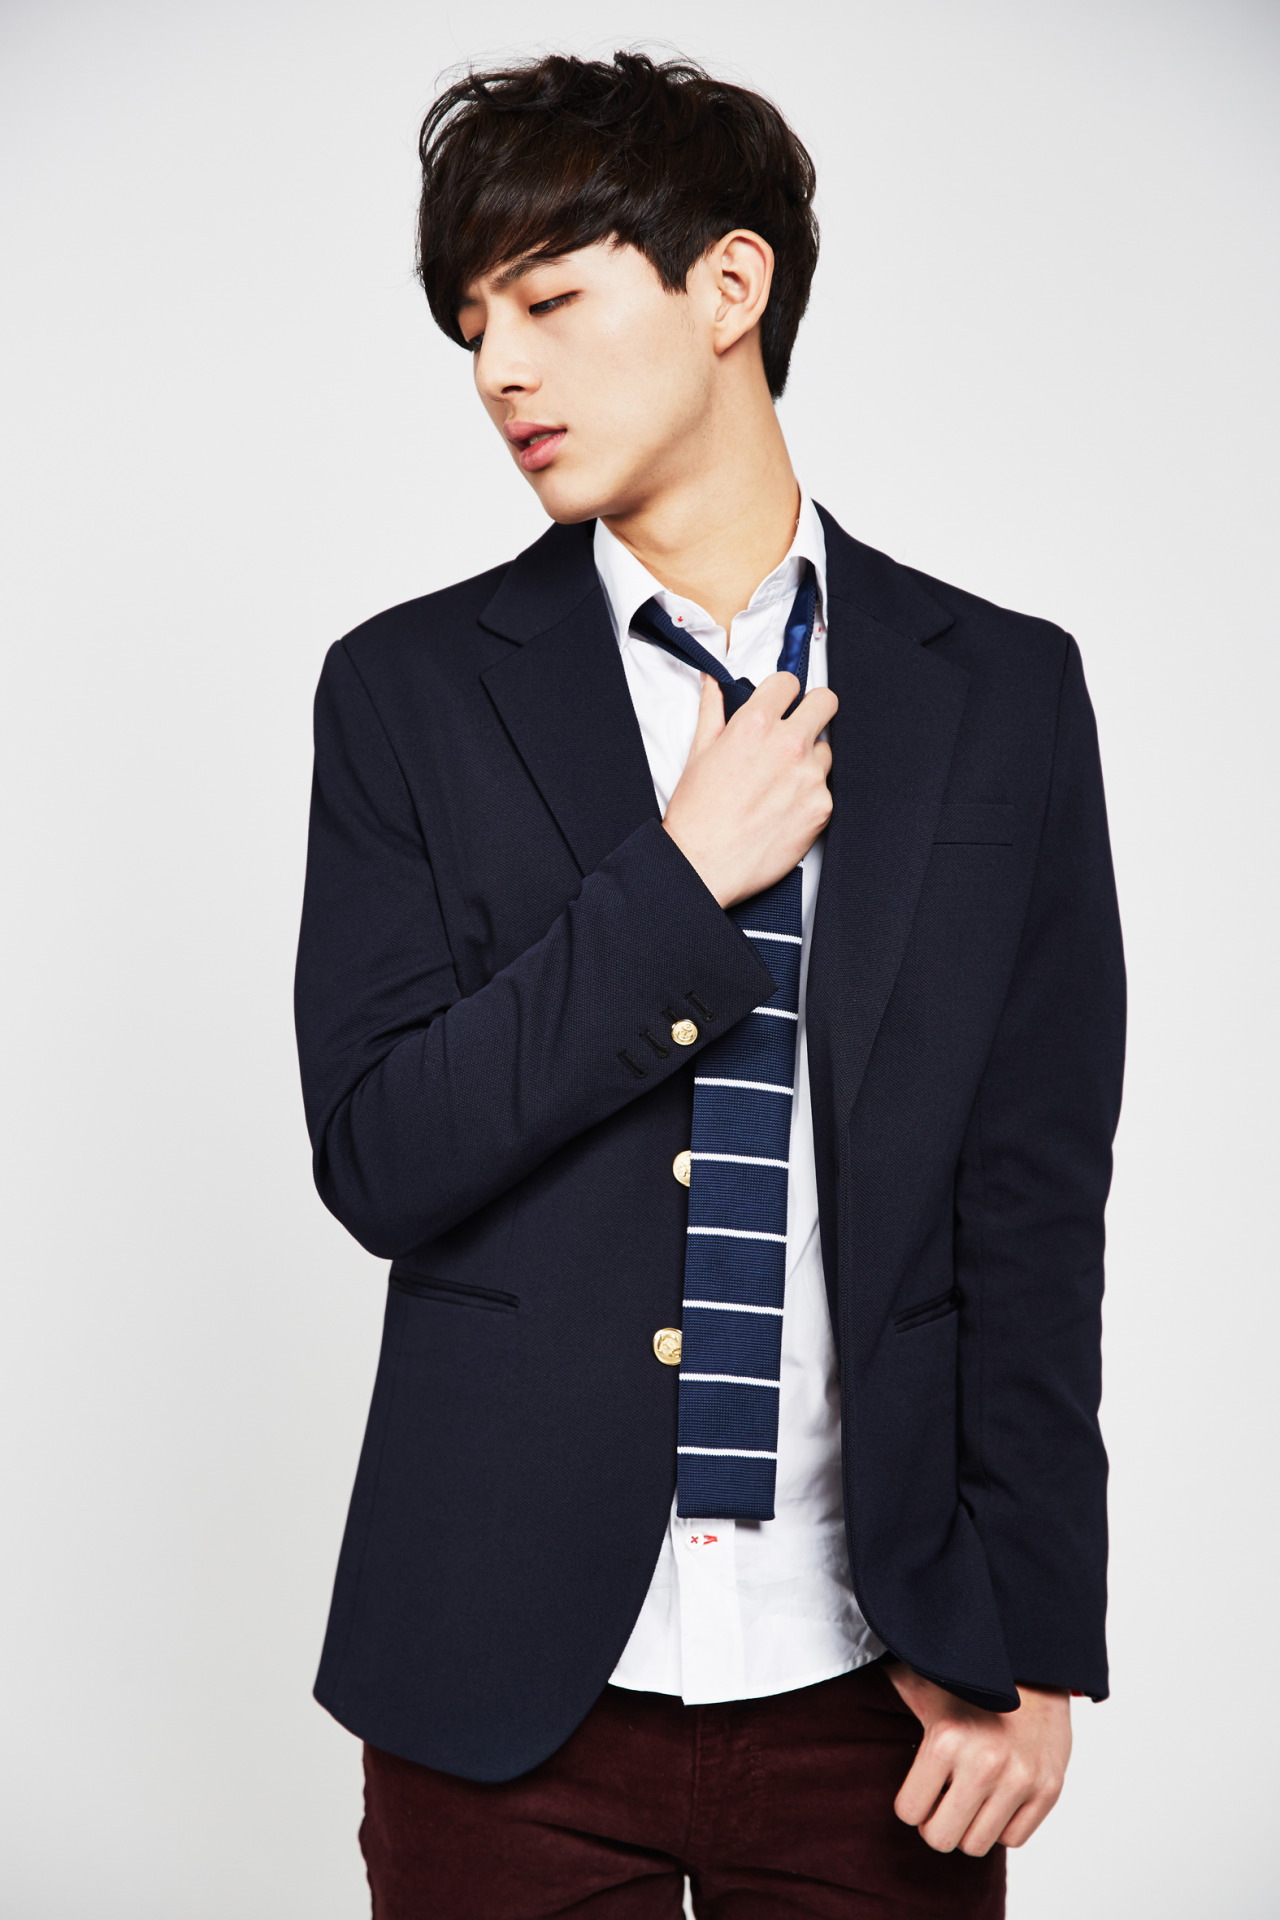 Spotlight Ji Soo The New Kid In School Seoulbeats